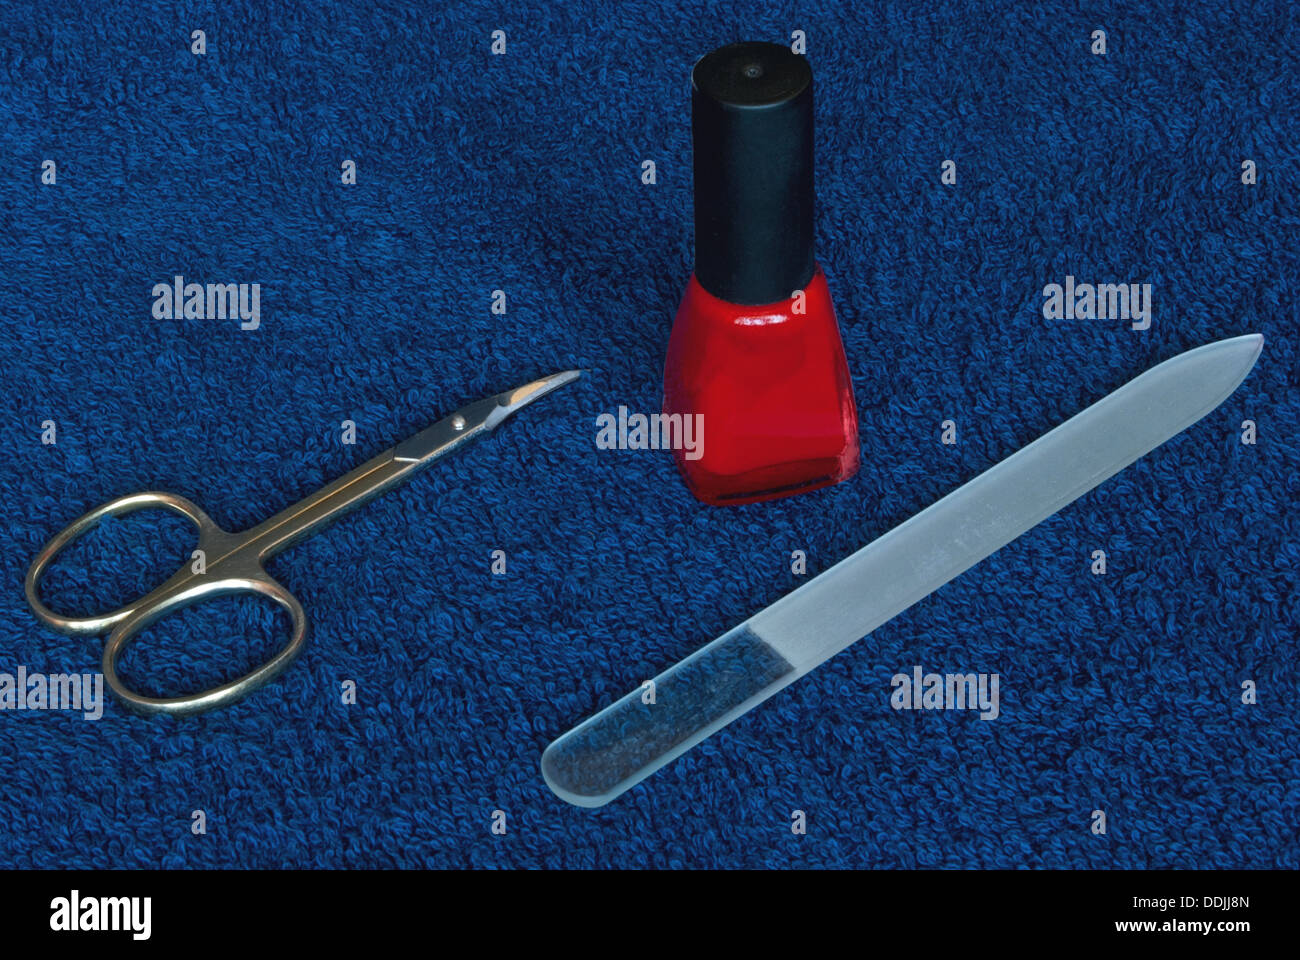 Composition of manicure set. Nail scissors and nail file. - Stock Image